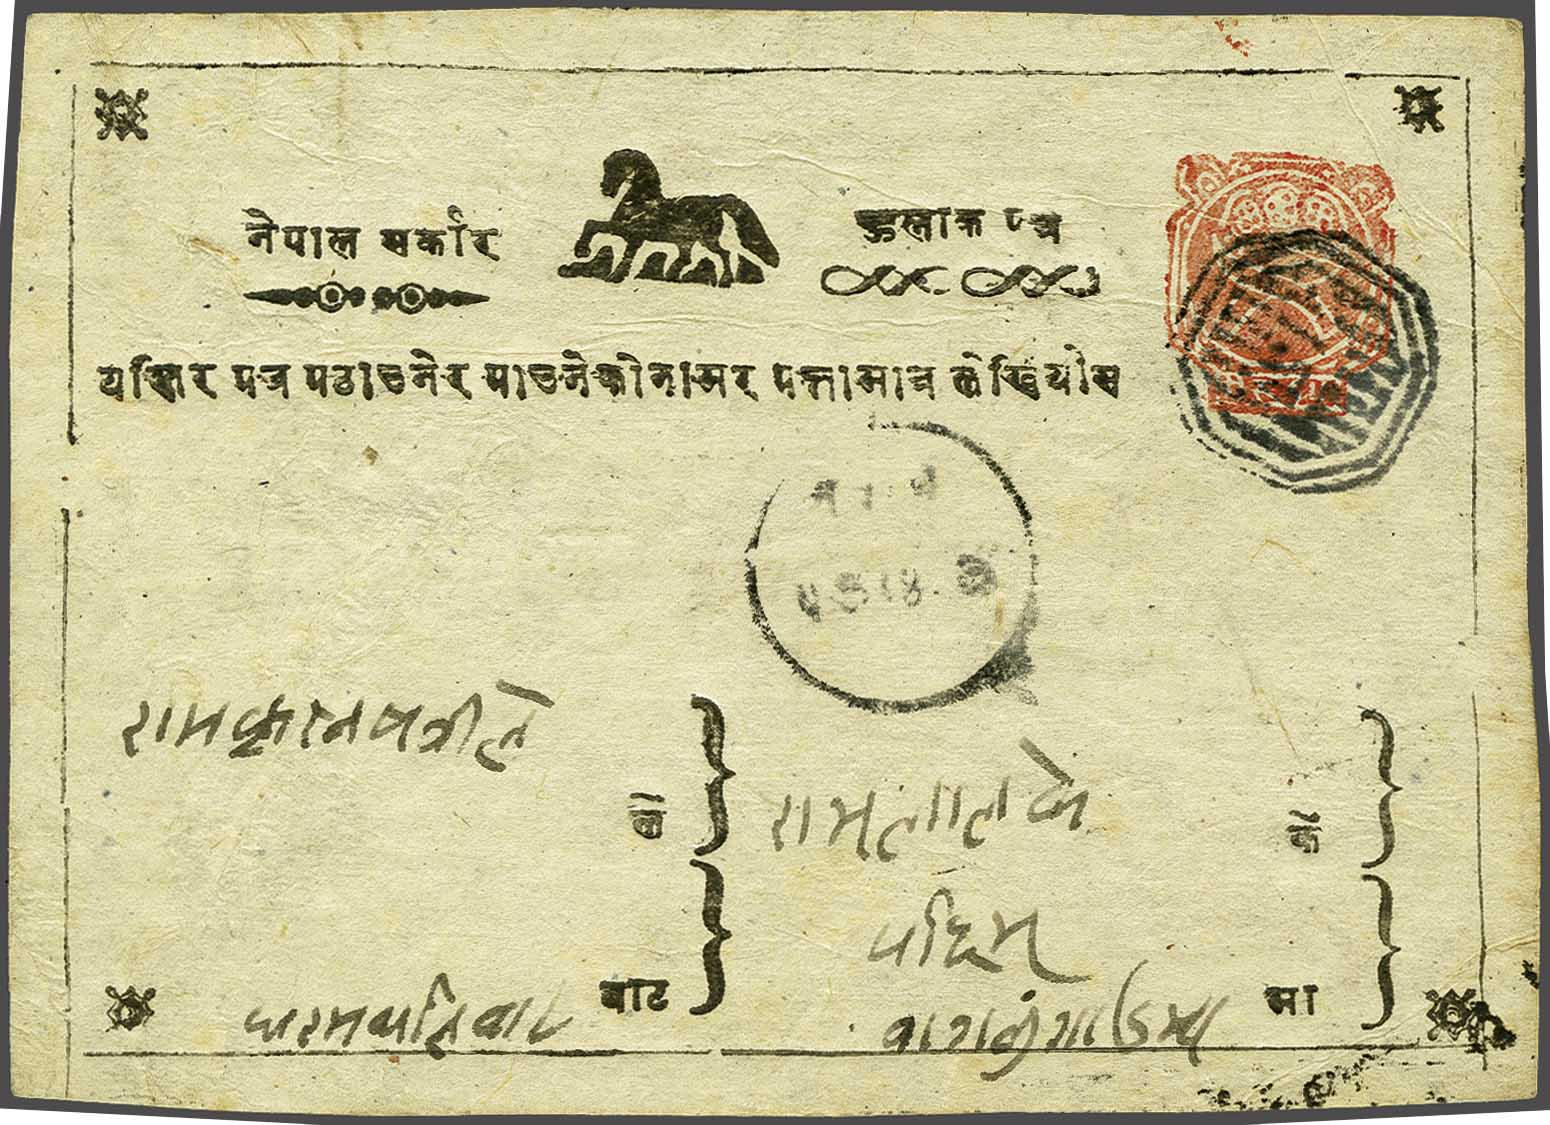 Lot 16 - Great Britain and former colonies Nepal -  Corinphila Veilingen Auction 245-246 Day 1 - Nepal - The Dick van der Wateren Collection, Foreign countries - Single lots, Picture postcards